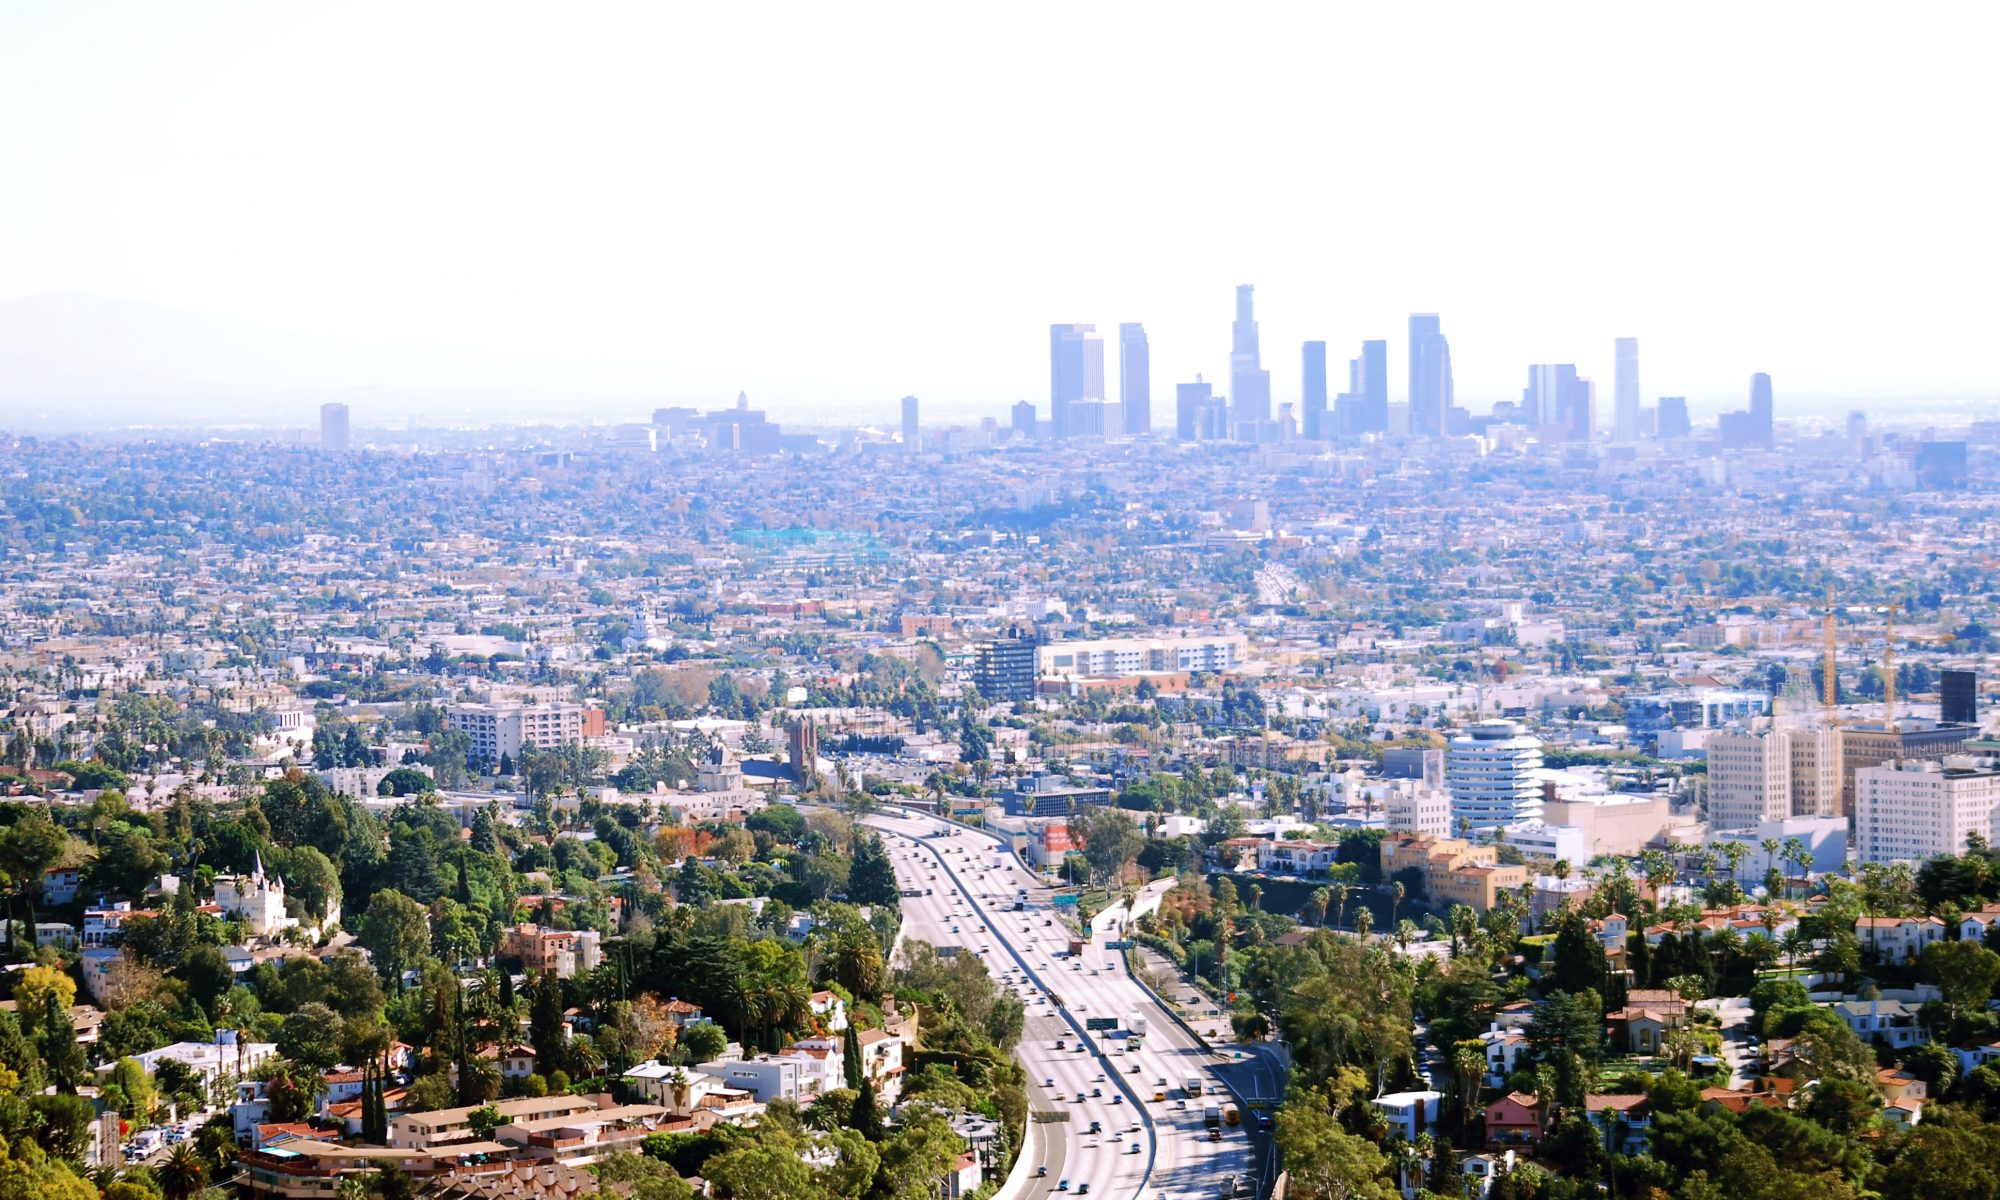 Los Angeles metropolitan area view with downtown on horizon